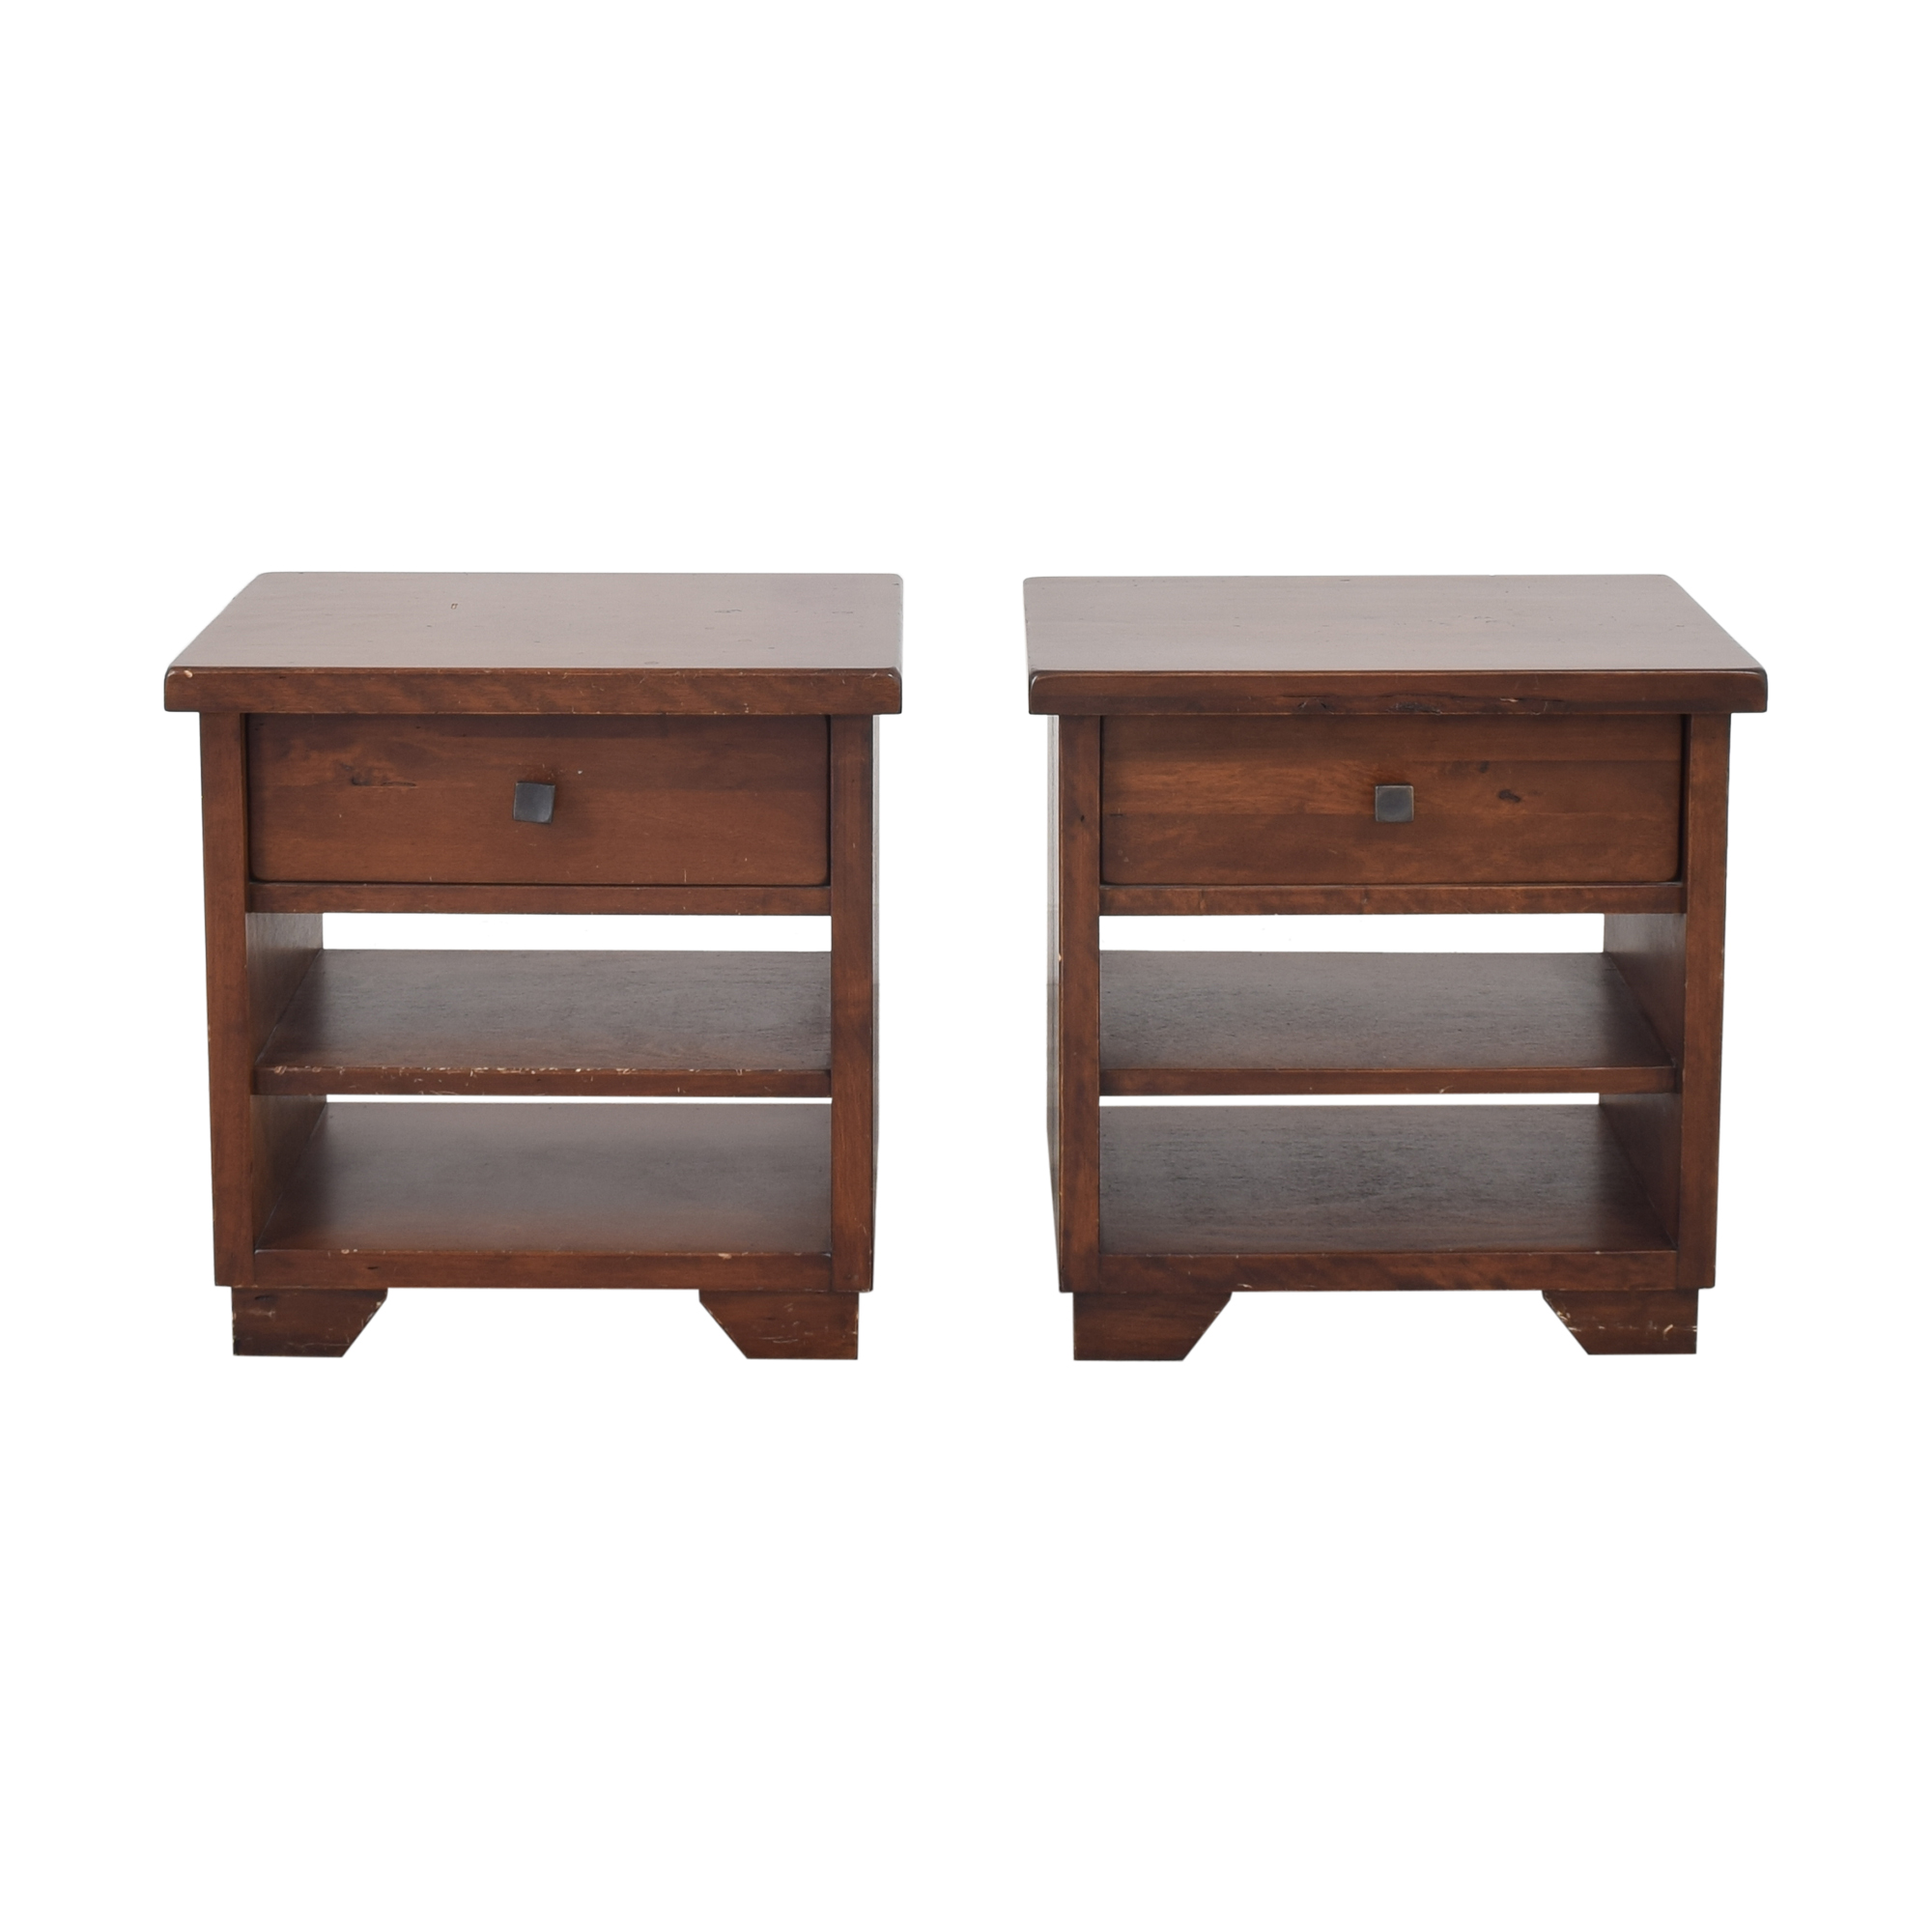 Pottery Barn Sumatra Nightstands / Tables